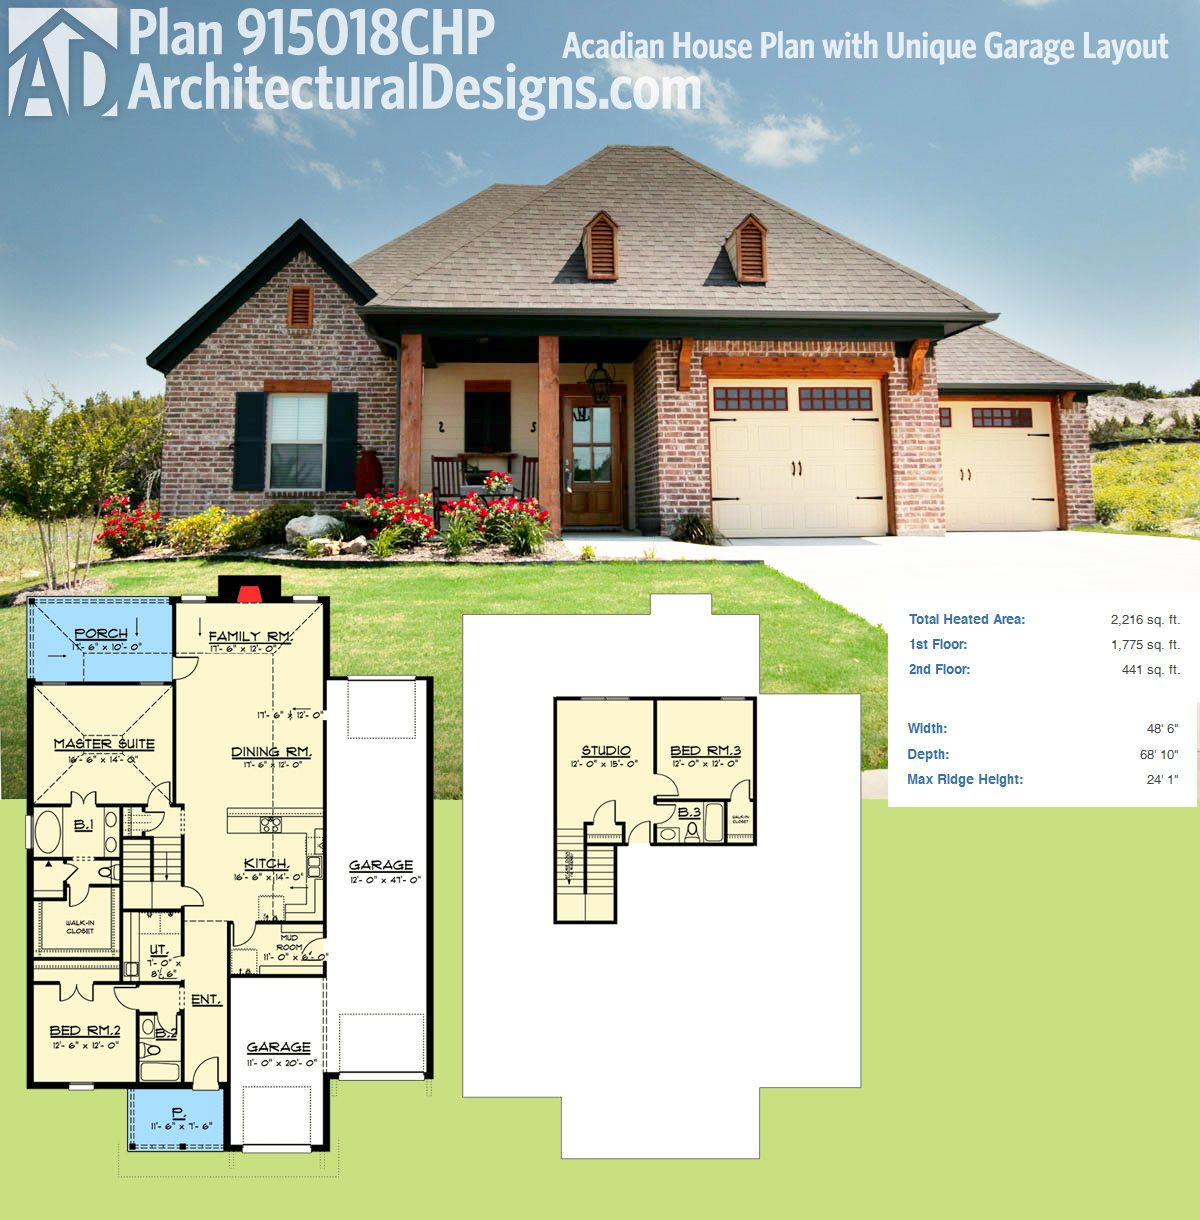 Architectural designs acadian house plan 915018chp gives for House plans acadian